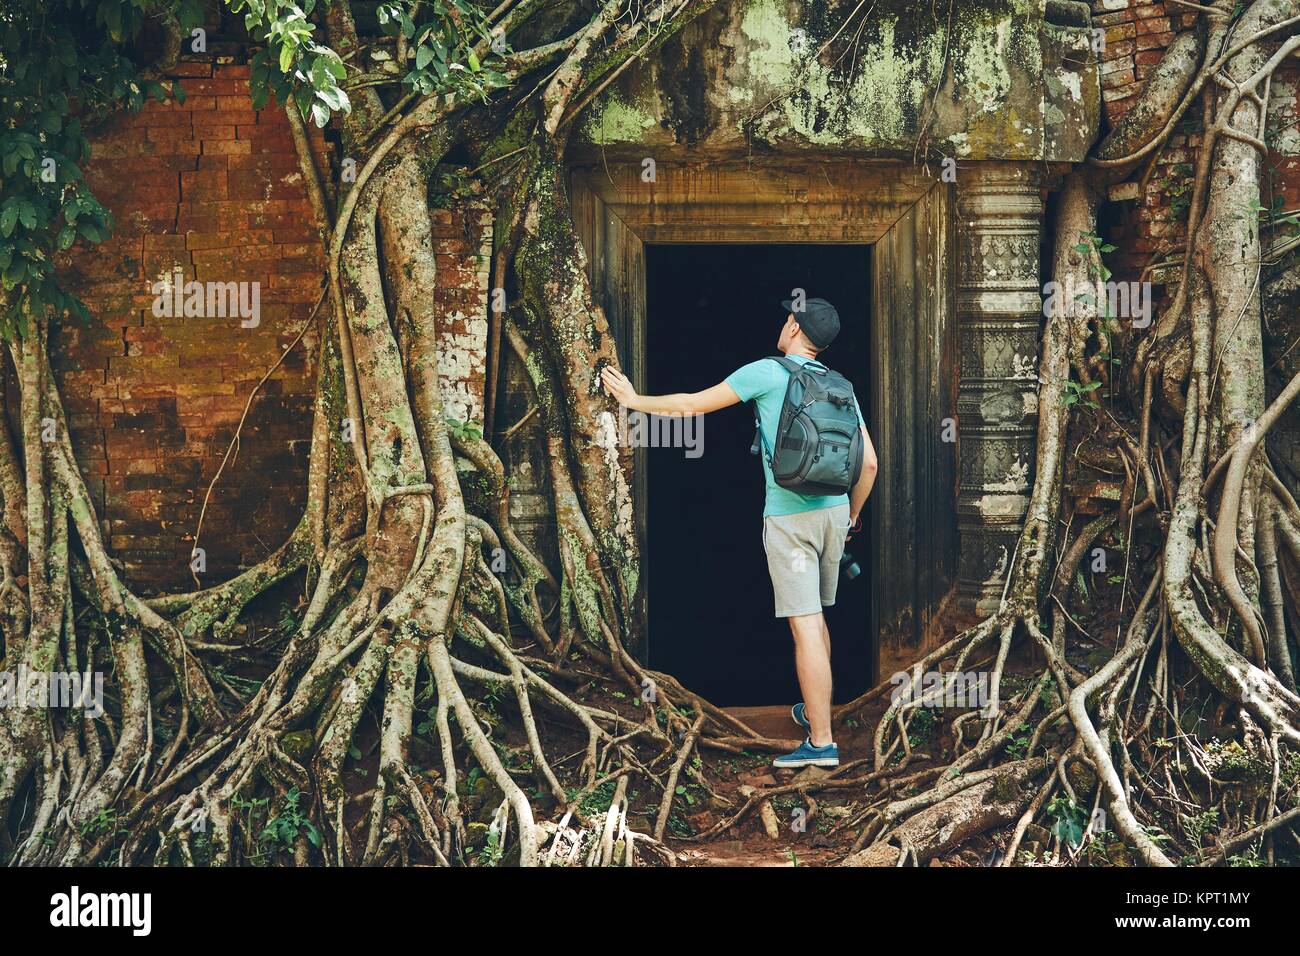 Young man with backpack coming to ancient monuments under the giant roots of the tree near Siem Reap (Angkor Wat) - Stock Image